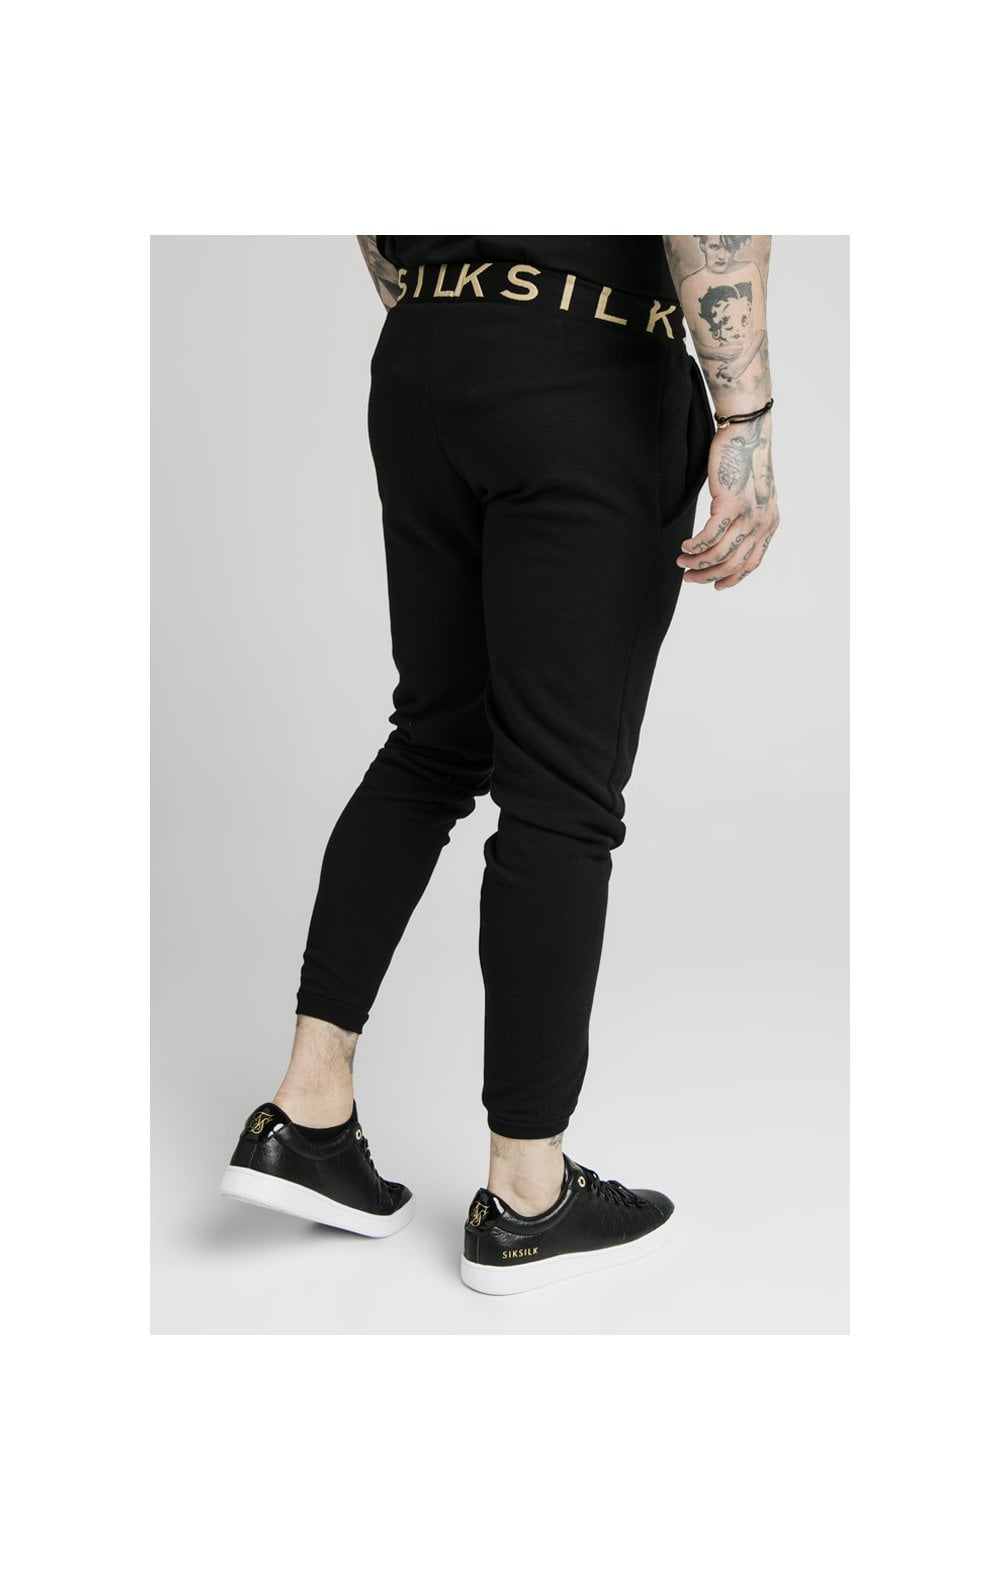 SikSilk Elastic Jacquard Pants - Black (1)